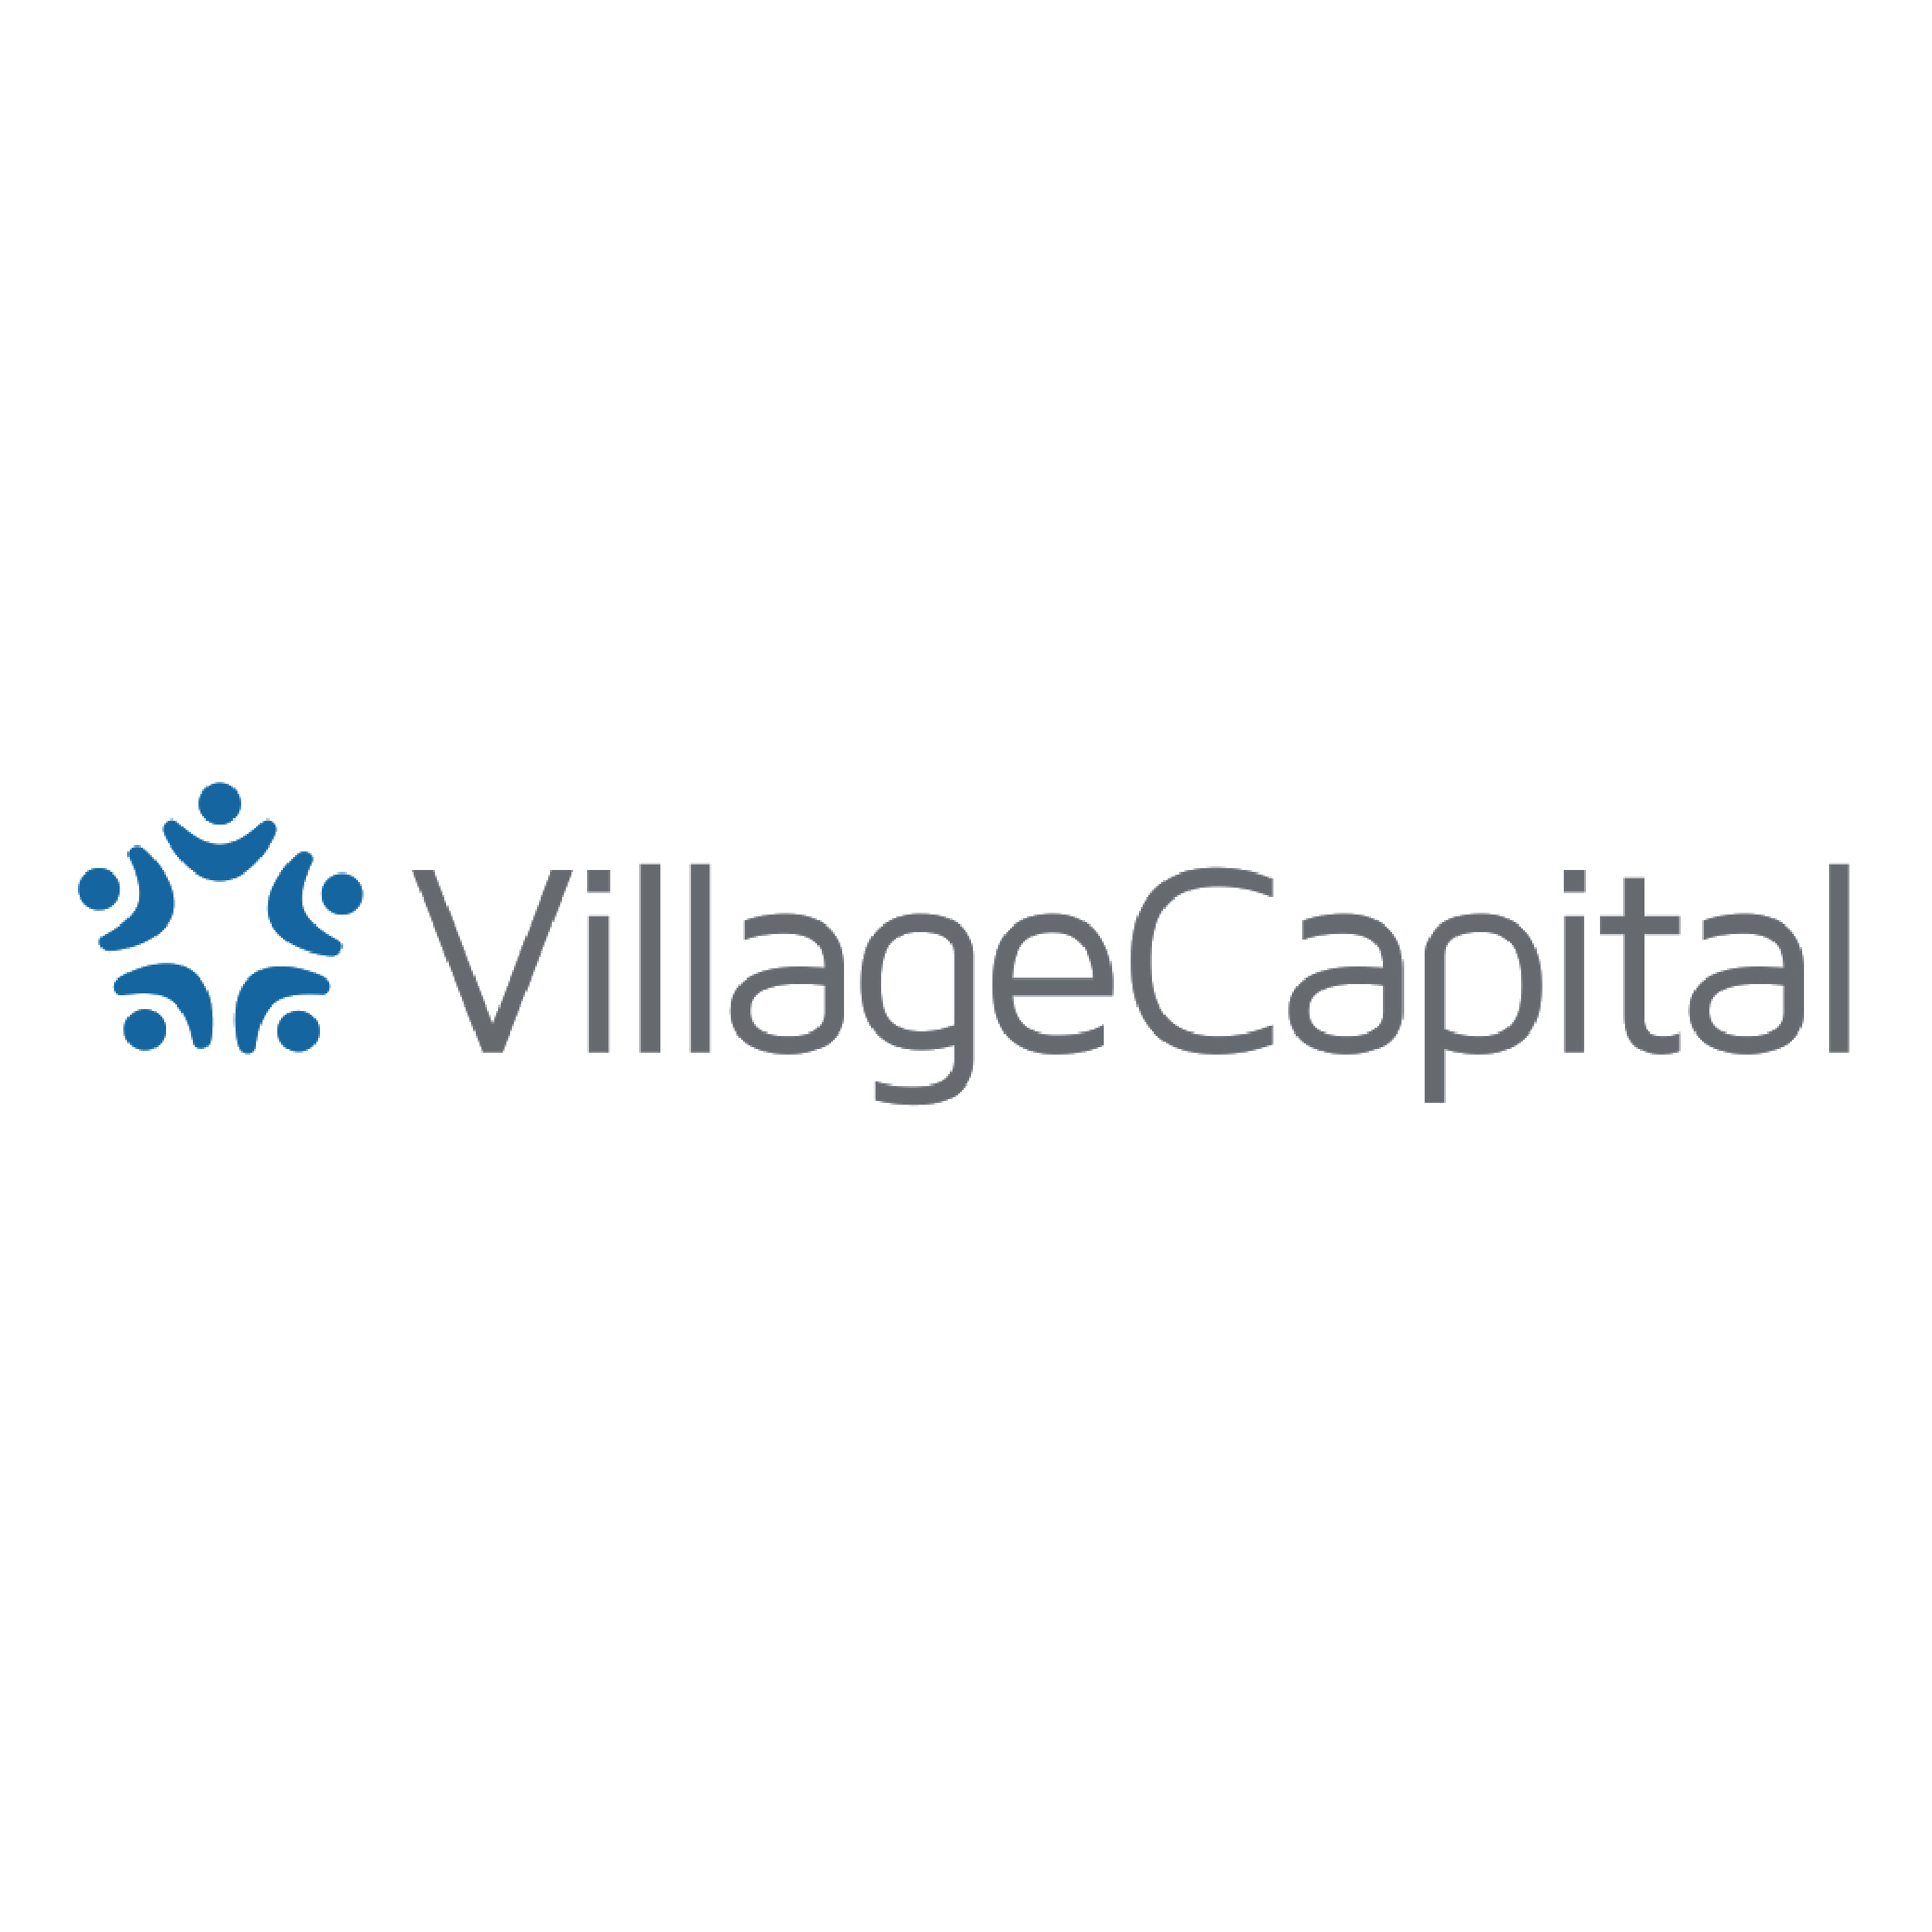 villagecapital-01.jpg